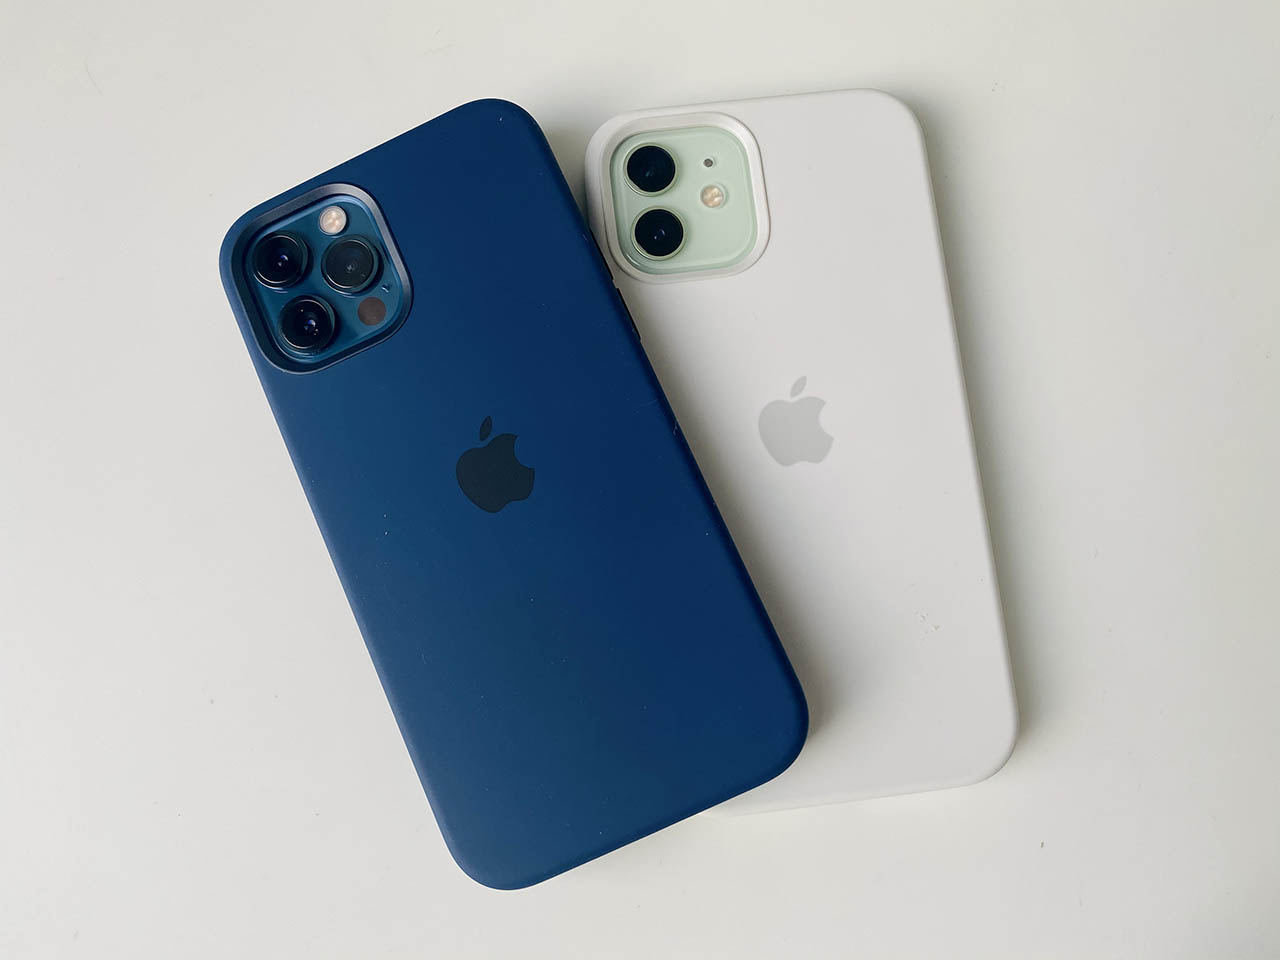 iPhone 12 hands-on